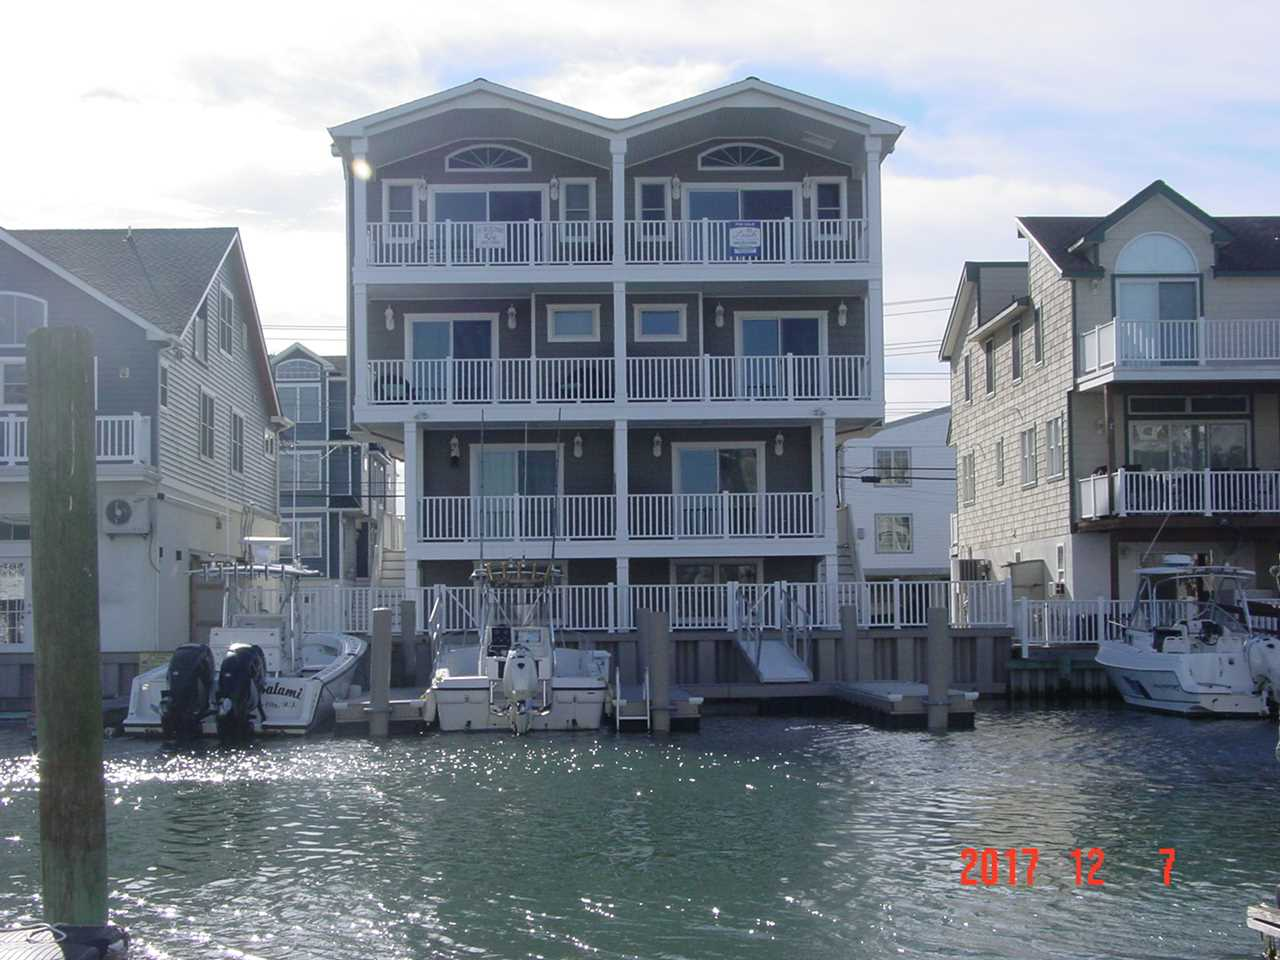 333 44th Place West  - Sea Isle City